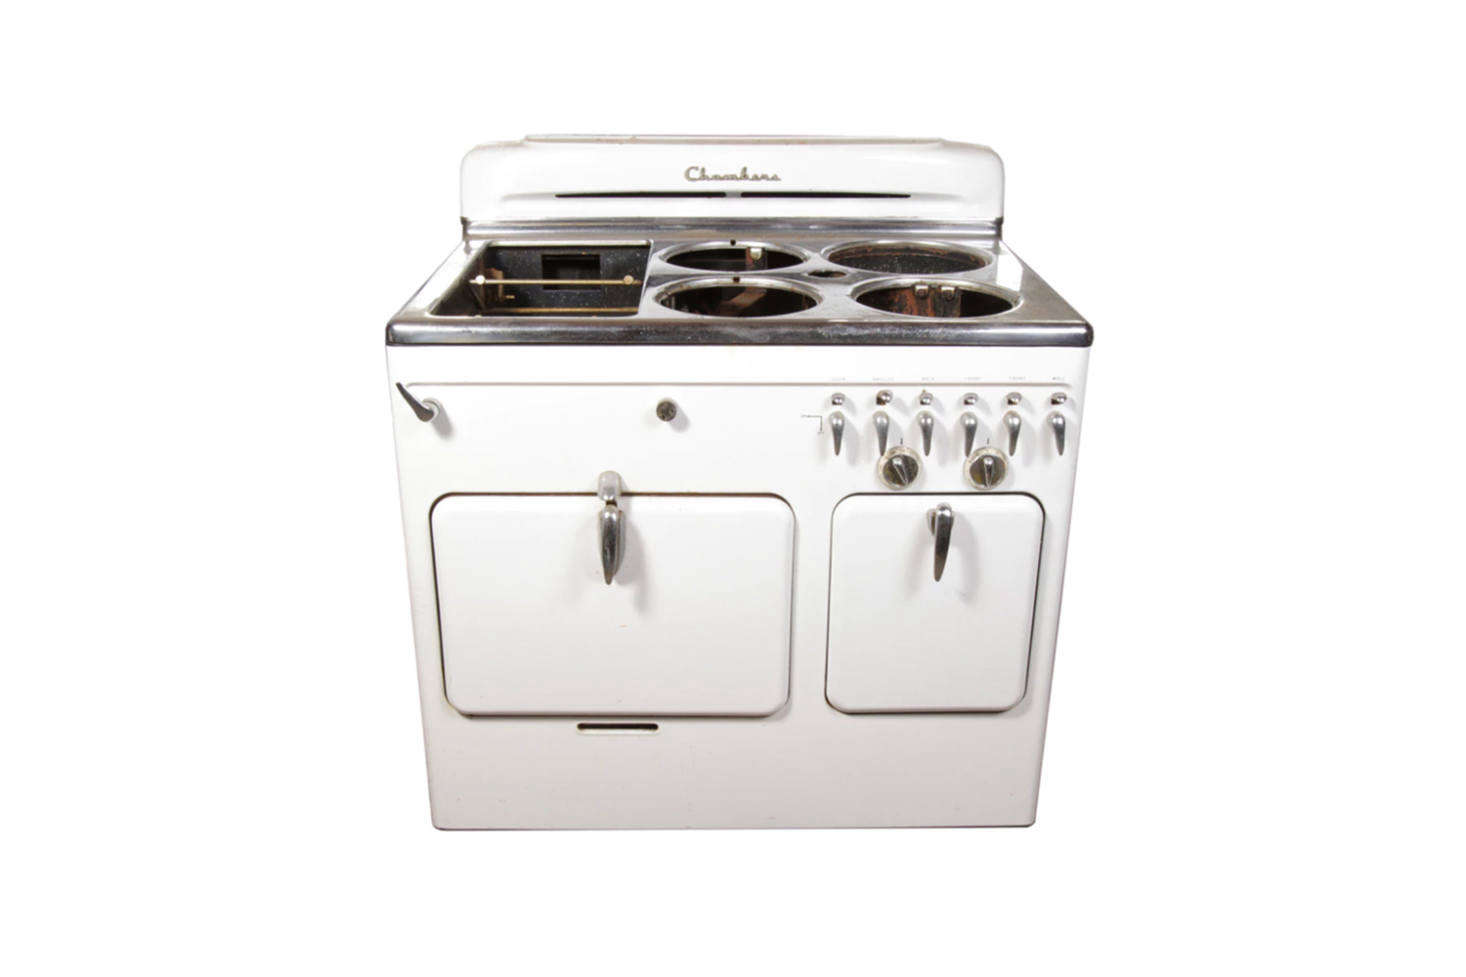 The Chambers Retro Kitchen Range In White Is The Vintage Range At The  Hudson Milliner Bu0026B